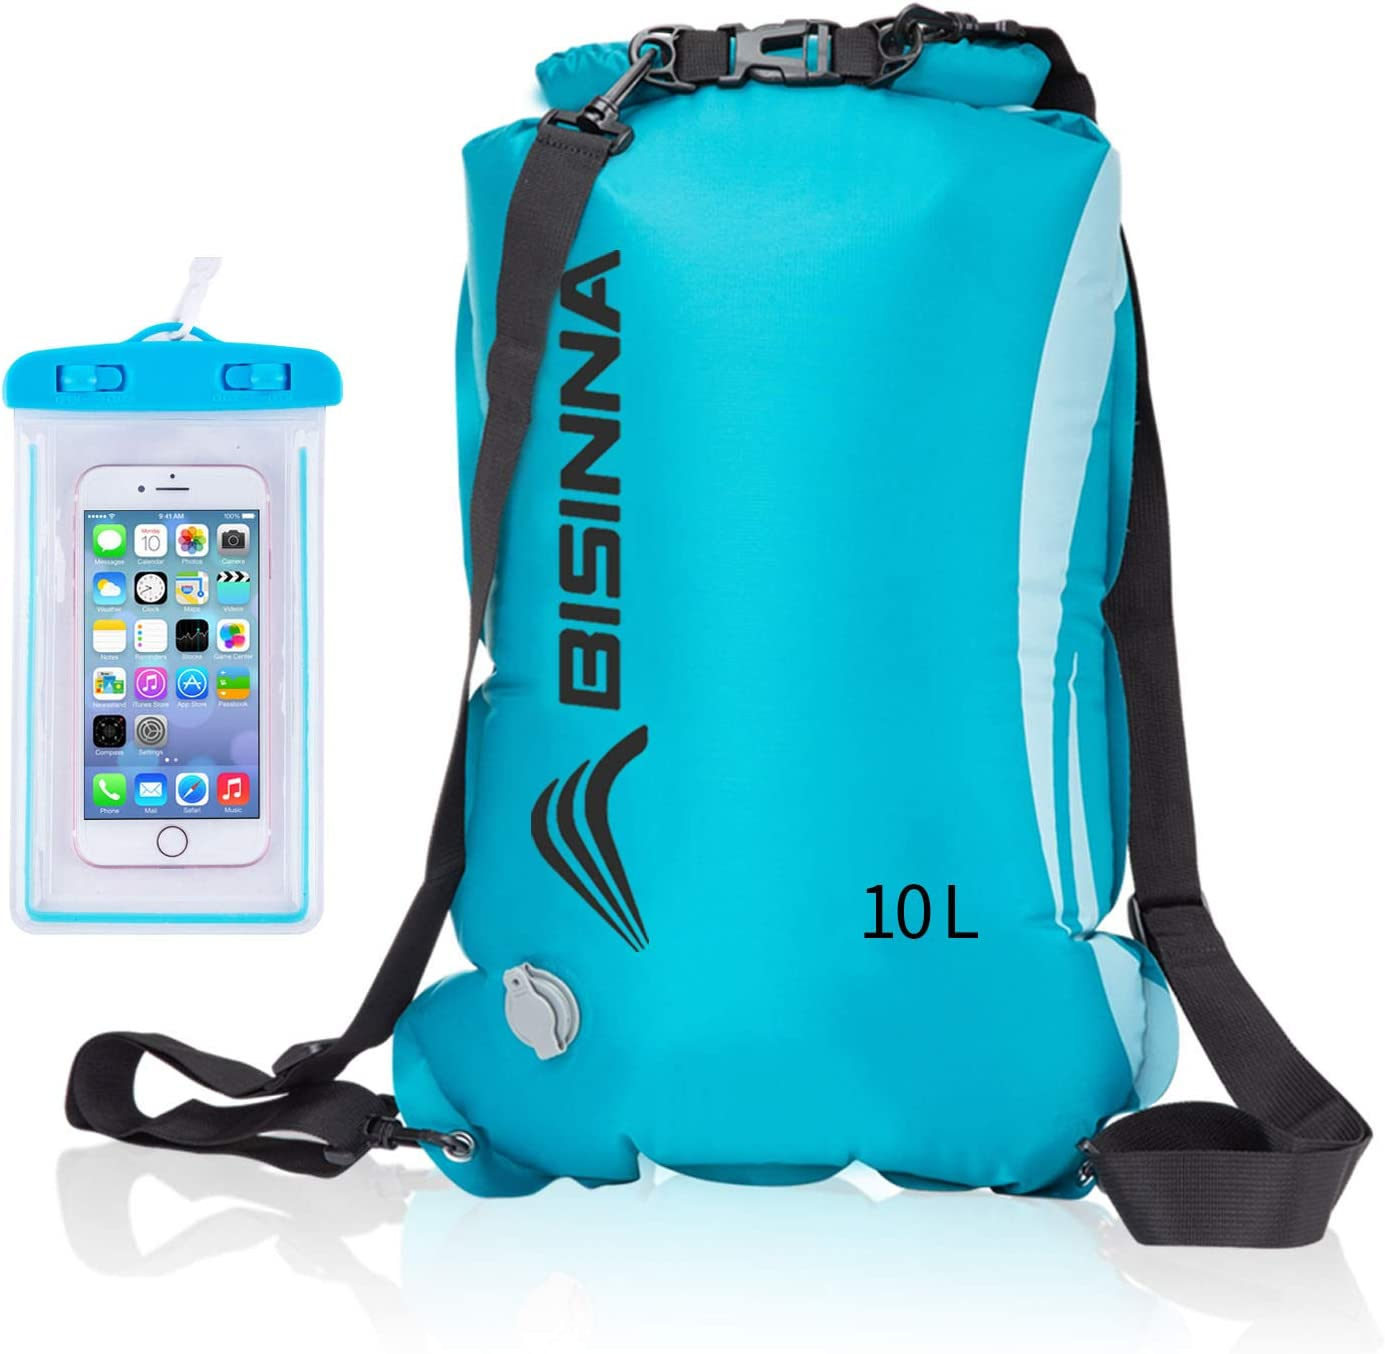 BISINNA Floating Waterproof Dry Bag 10L//20L Dry Wet Separation Roll Top Dry Compression Sack Keeps Gear Dry for Kayaking//Rafting//Boating//Swimming//Camping//Beach//Fishing with Waterproof Phone Case